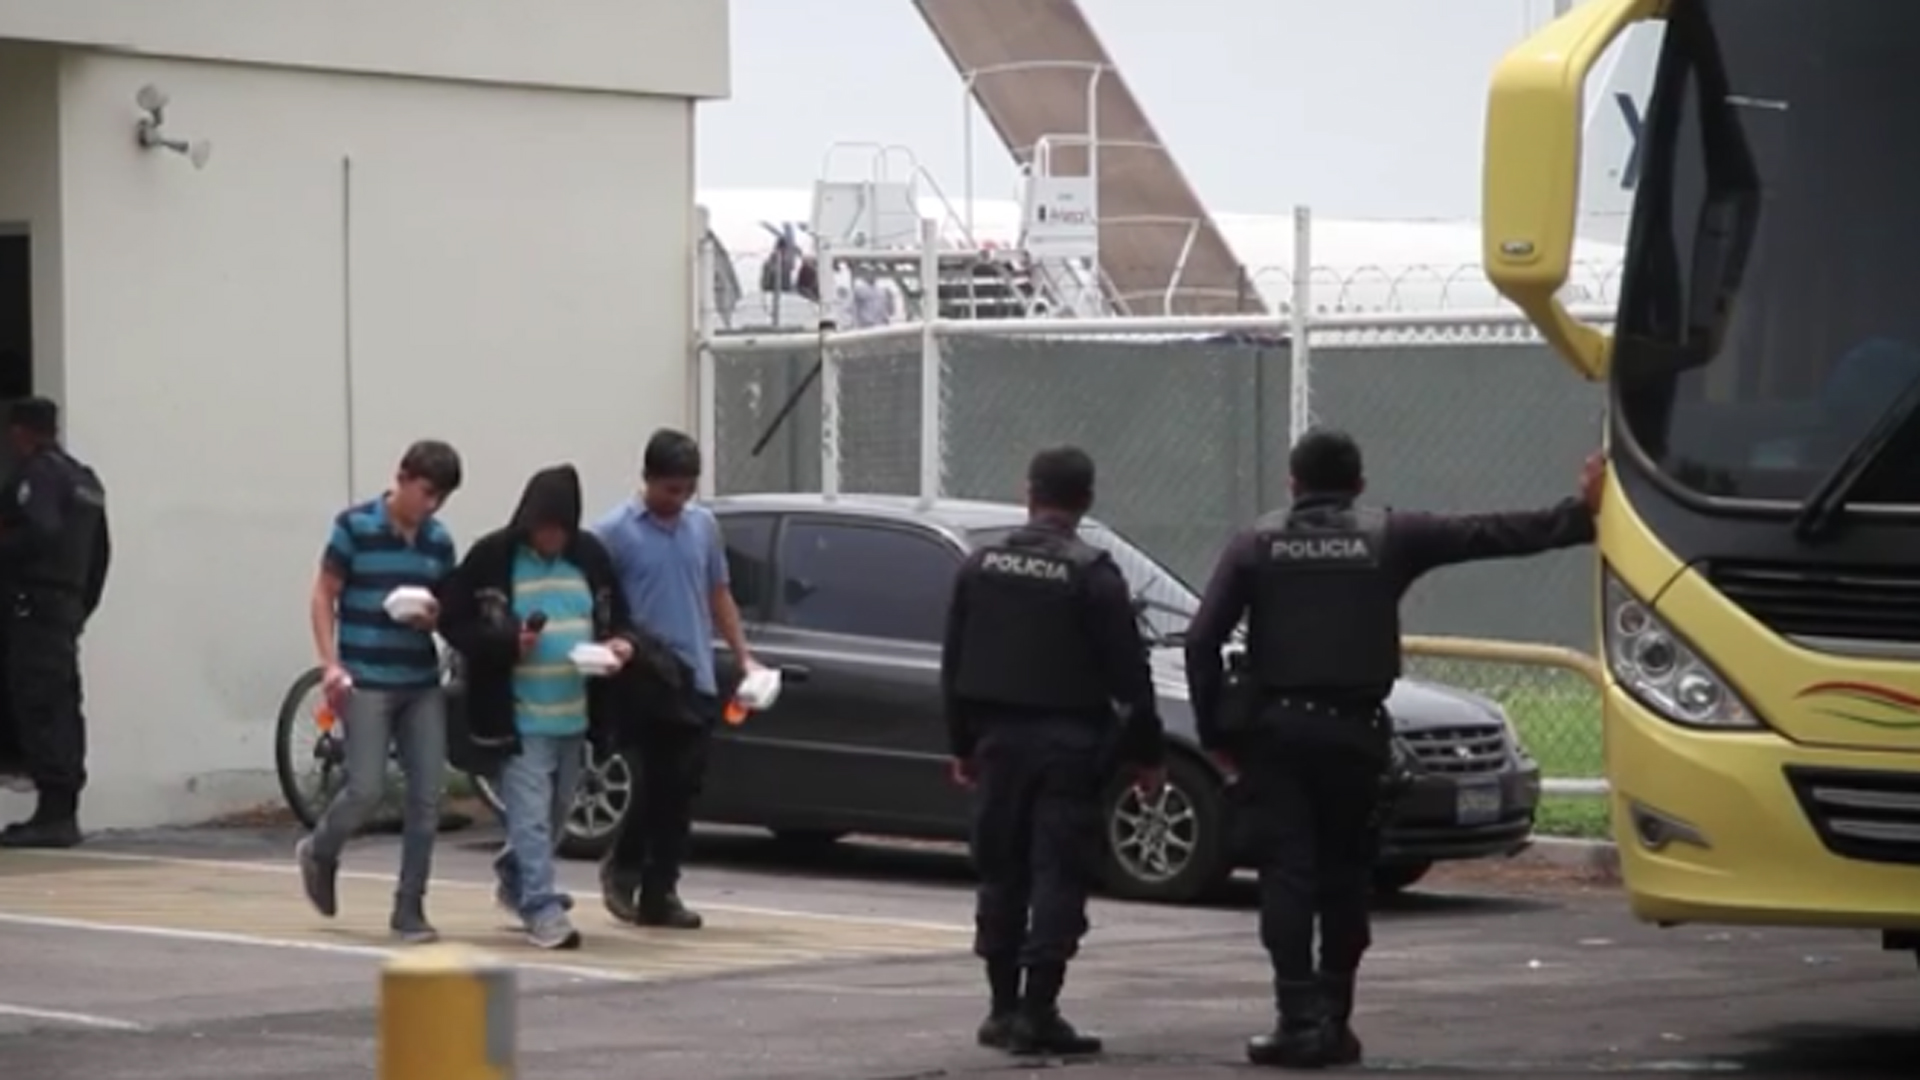 Salvadorans deported from the U.S. return home in this undated photo. (Credit: CNN)